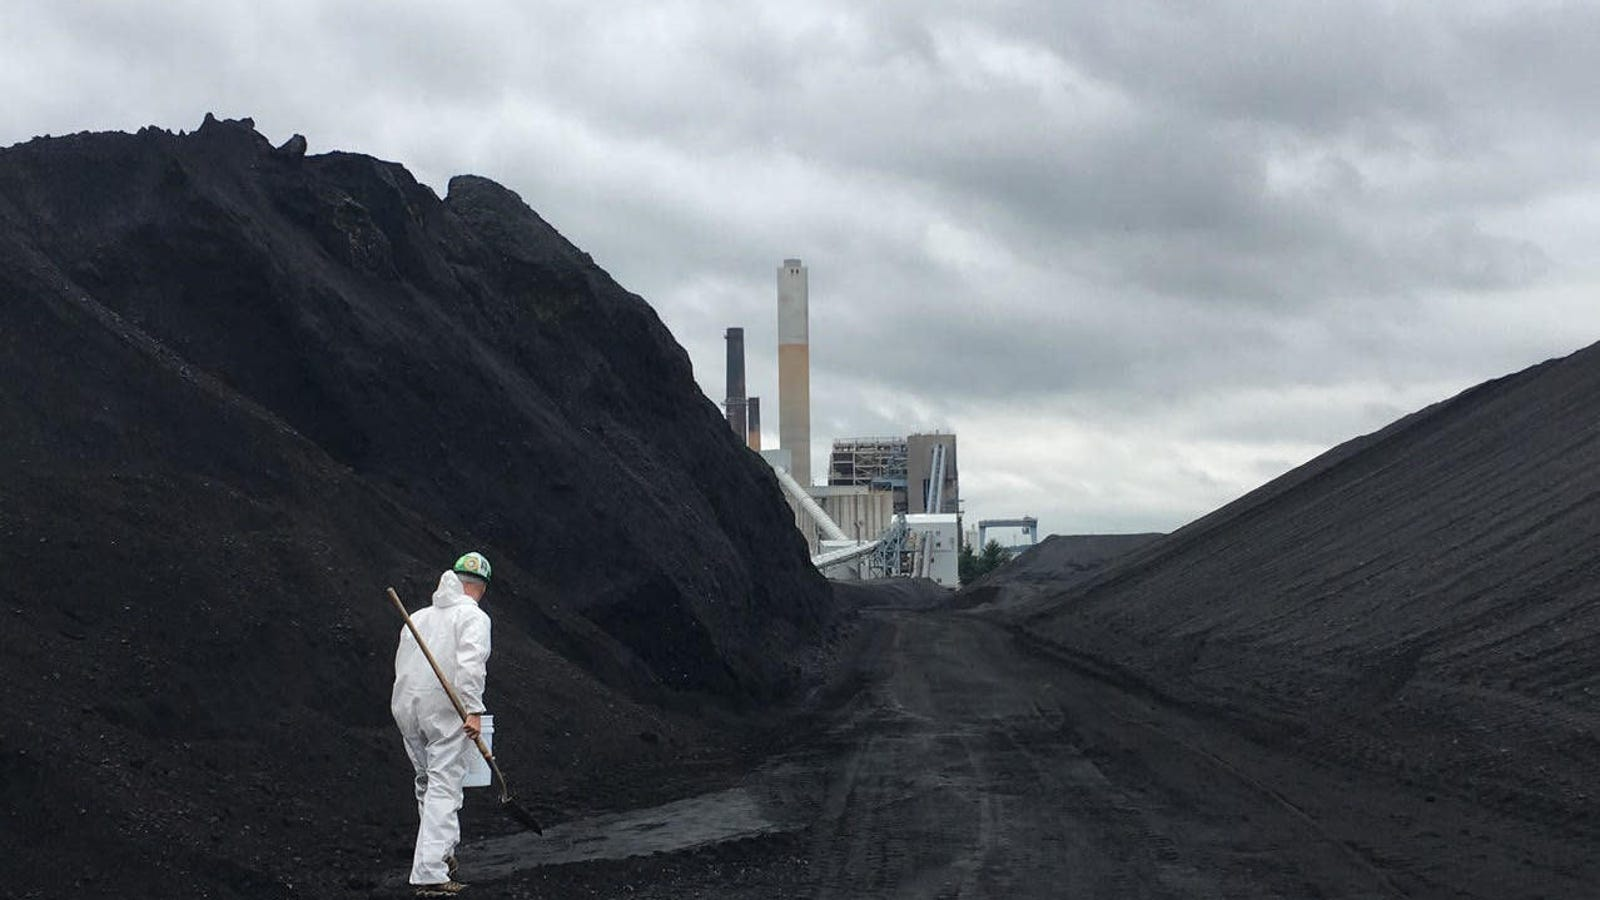 Nearly 70 Activists Arrested Attempting to Steal Coal From One of New England's Biggest Coal Plants